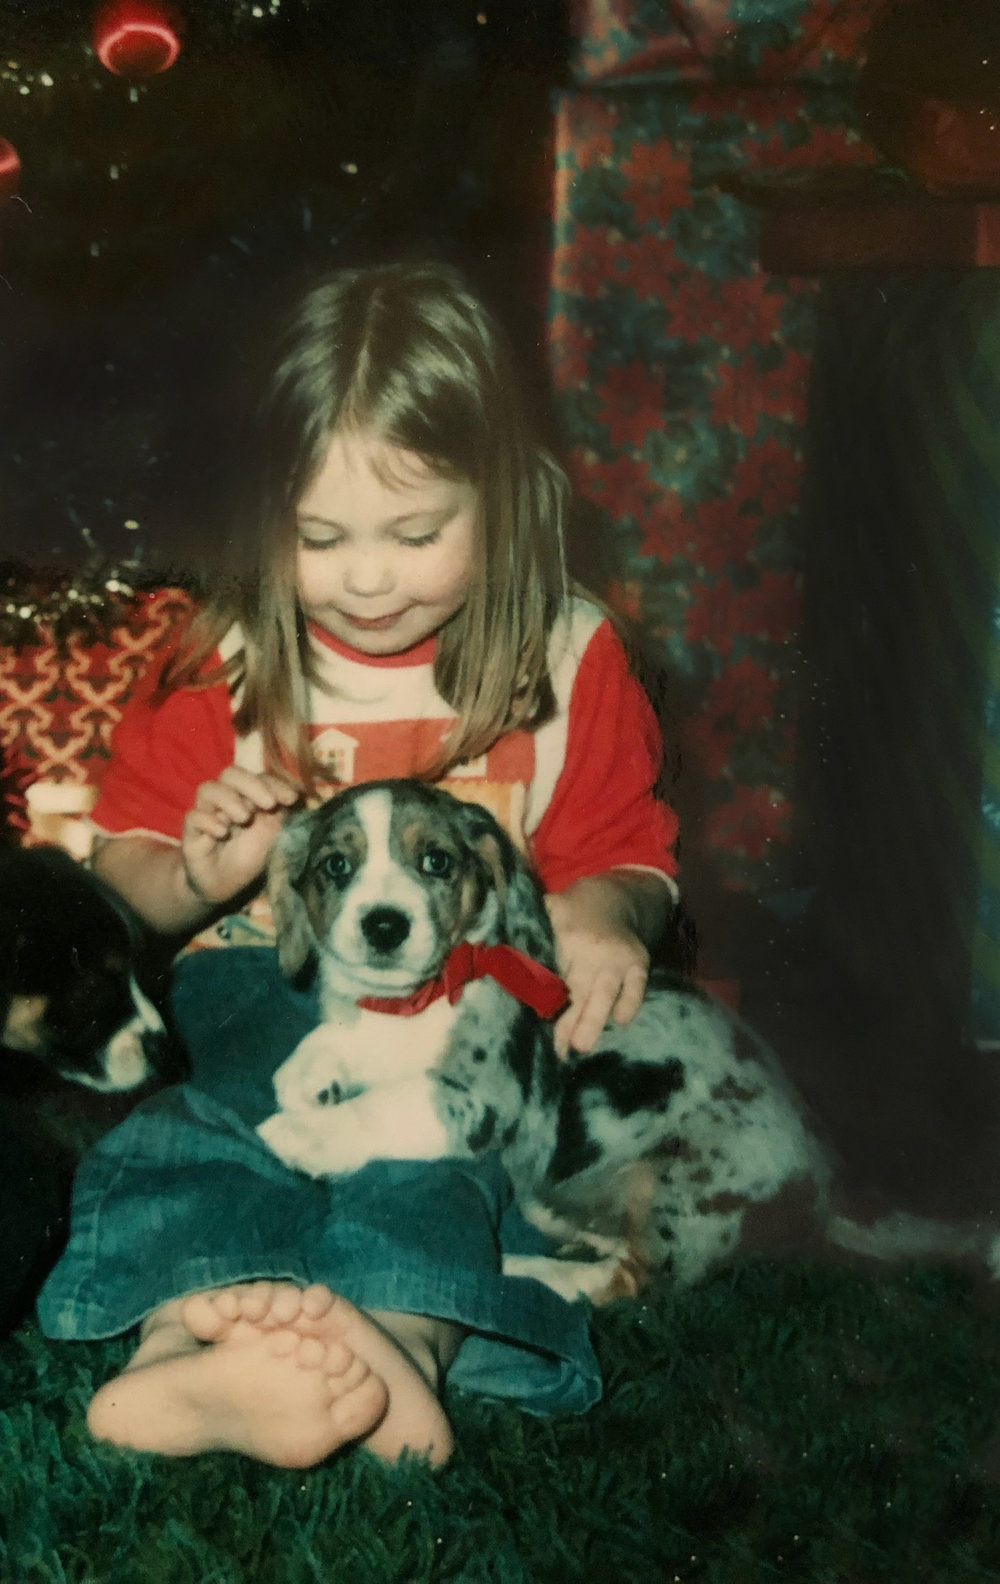 This is me at 3, in front of the christmas tree, with my new dog troubles. wow, my life is already sounding like a dolly parton song. Loved this guy. A lot.